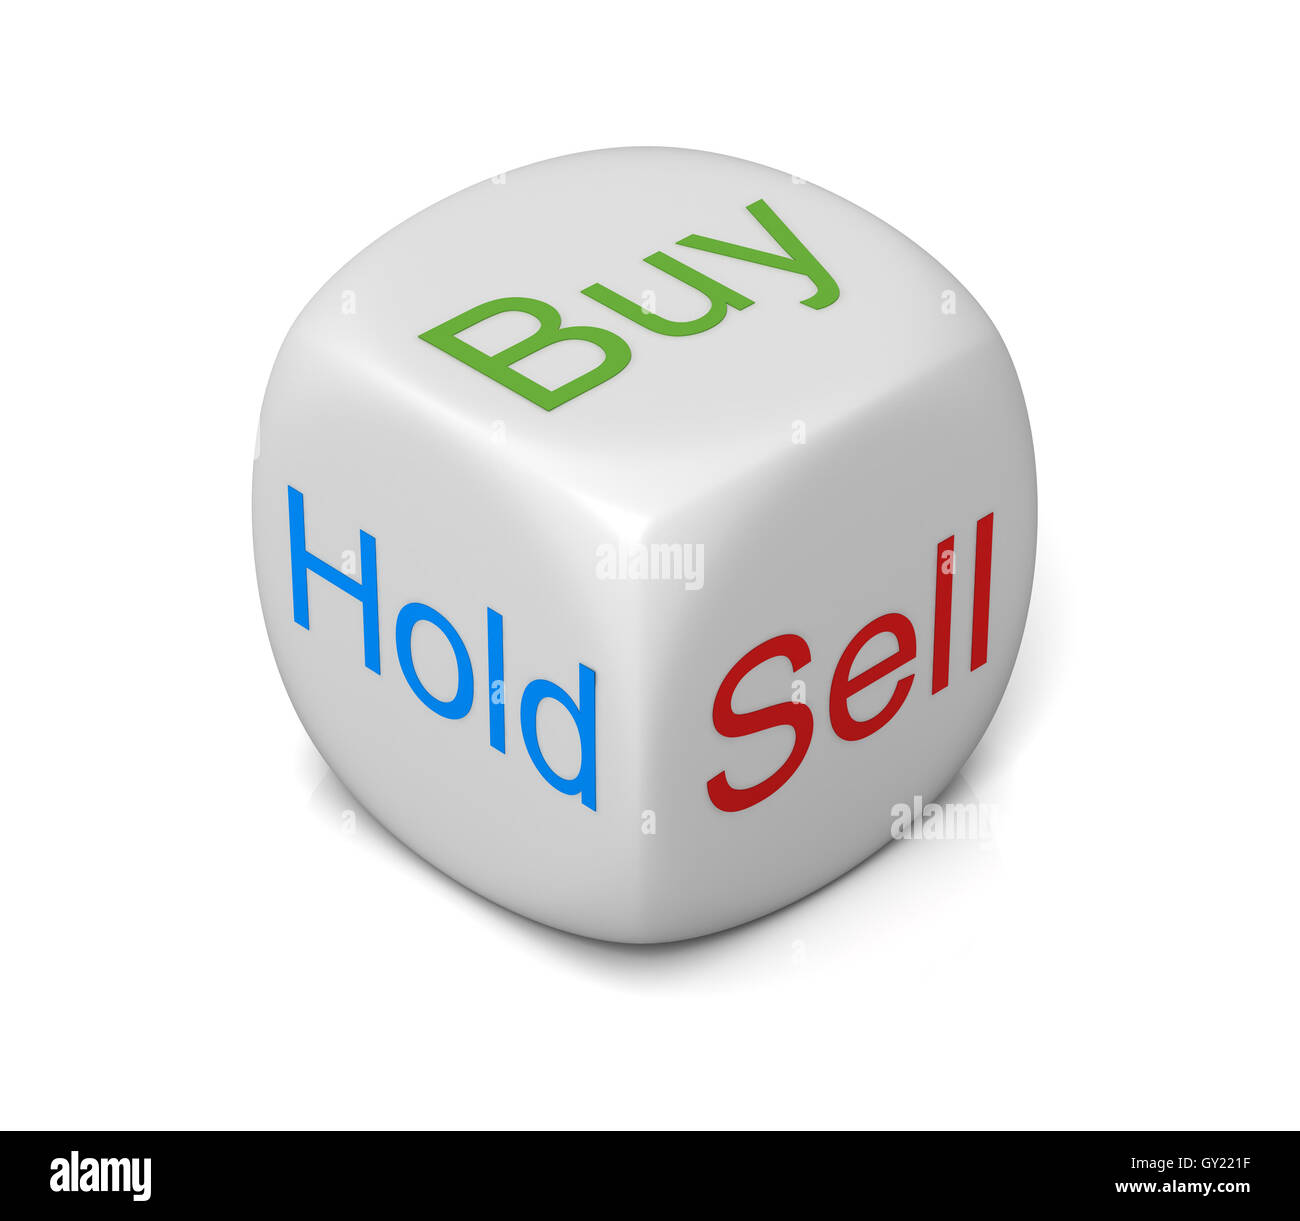 Buy Sell Dice Stock Photos & Buy Sell Dice Stock Images - Alamy